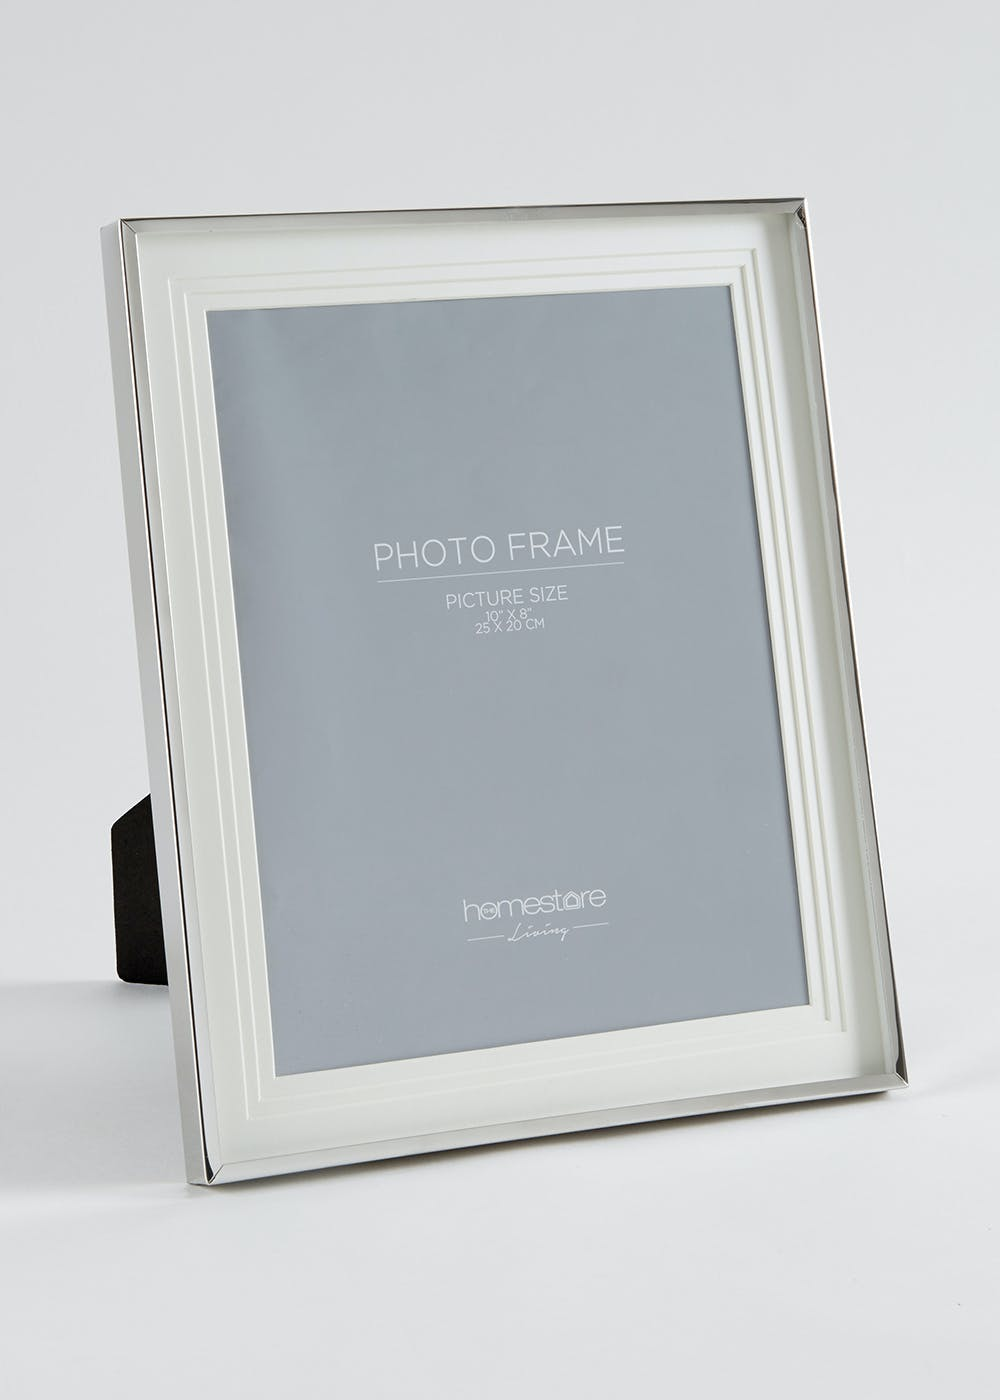 Photo frames picture frames mirrors matalan stainless steel photo frame 31cm x 26cm jeuxipadfo Choice Image